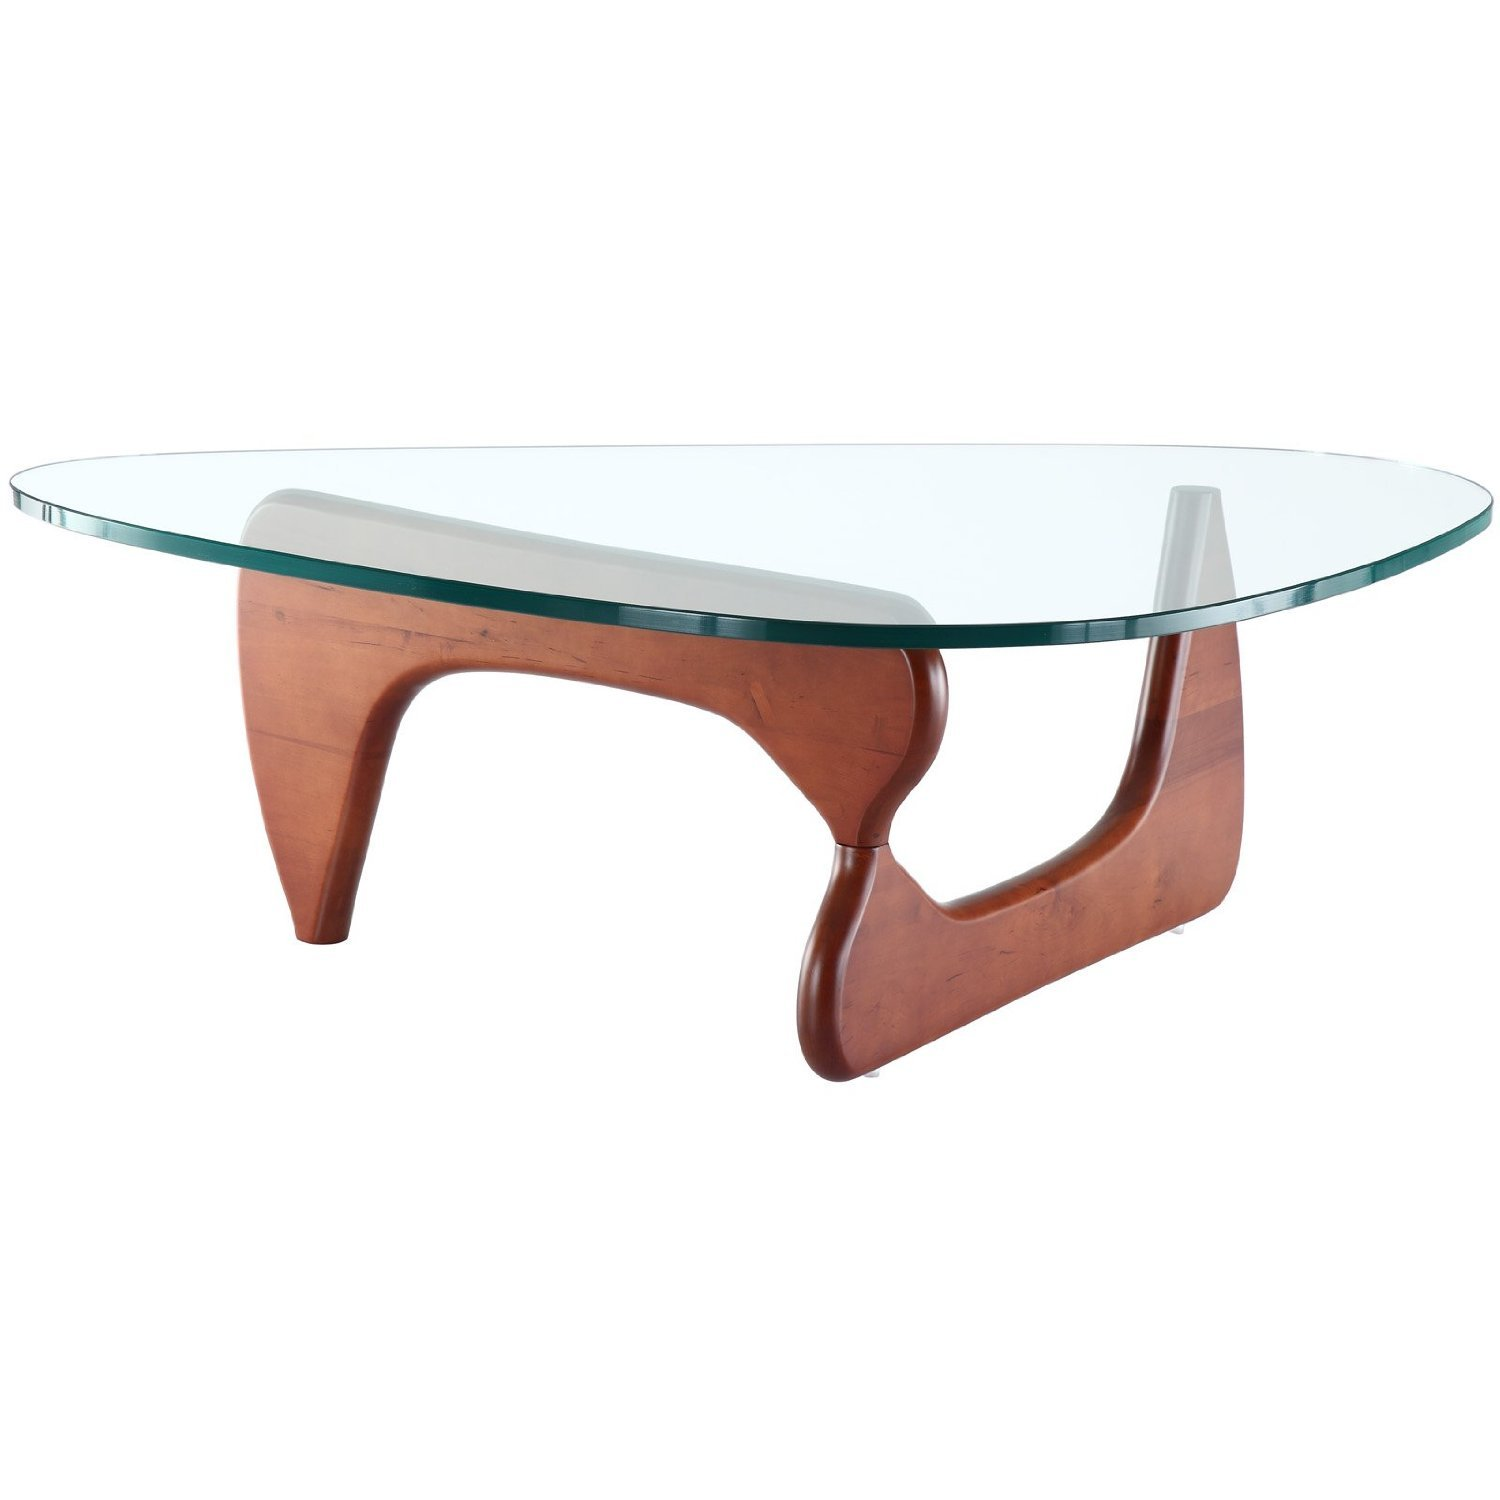 Isamu Noguchi coffee table Natural Finish Base Amazon Home